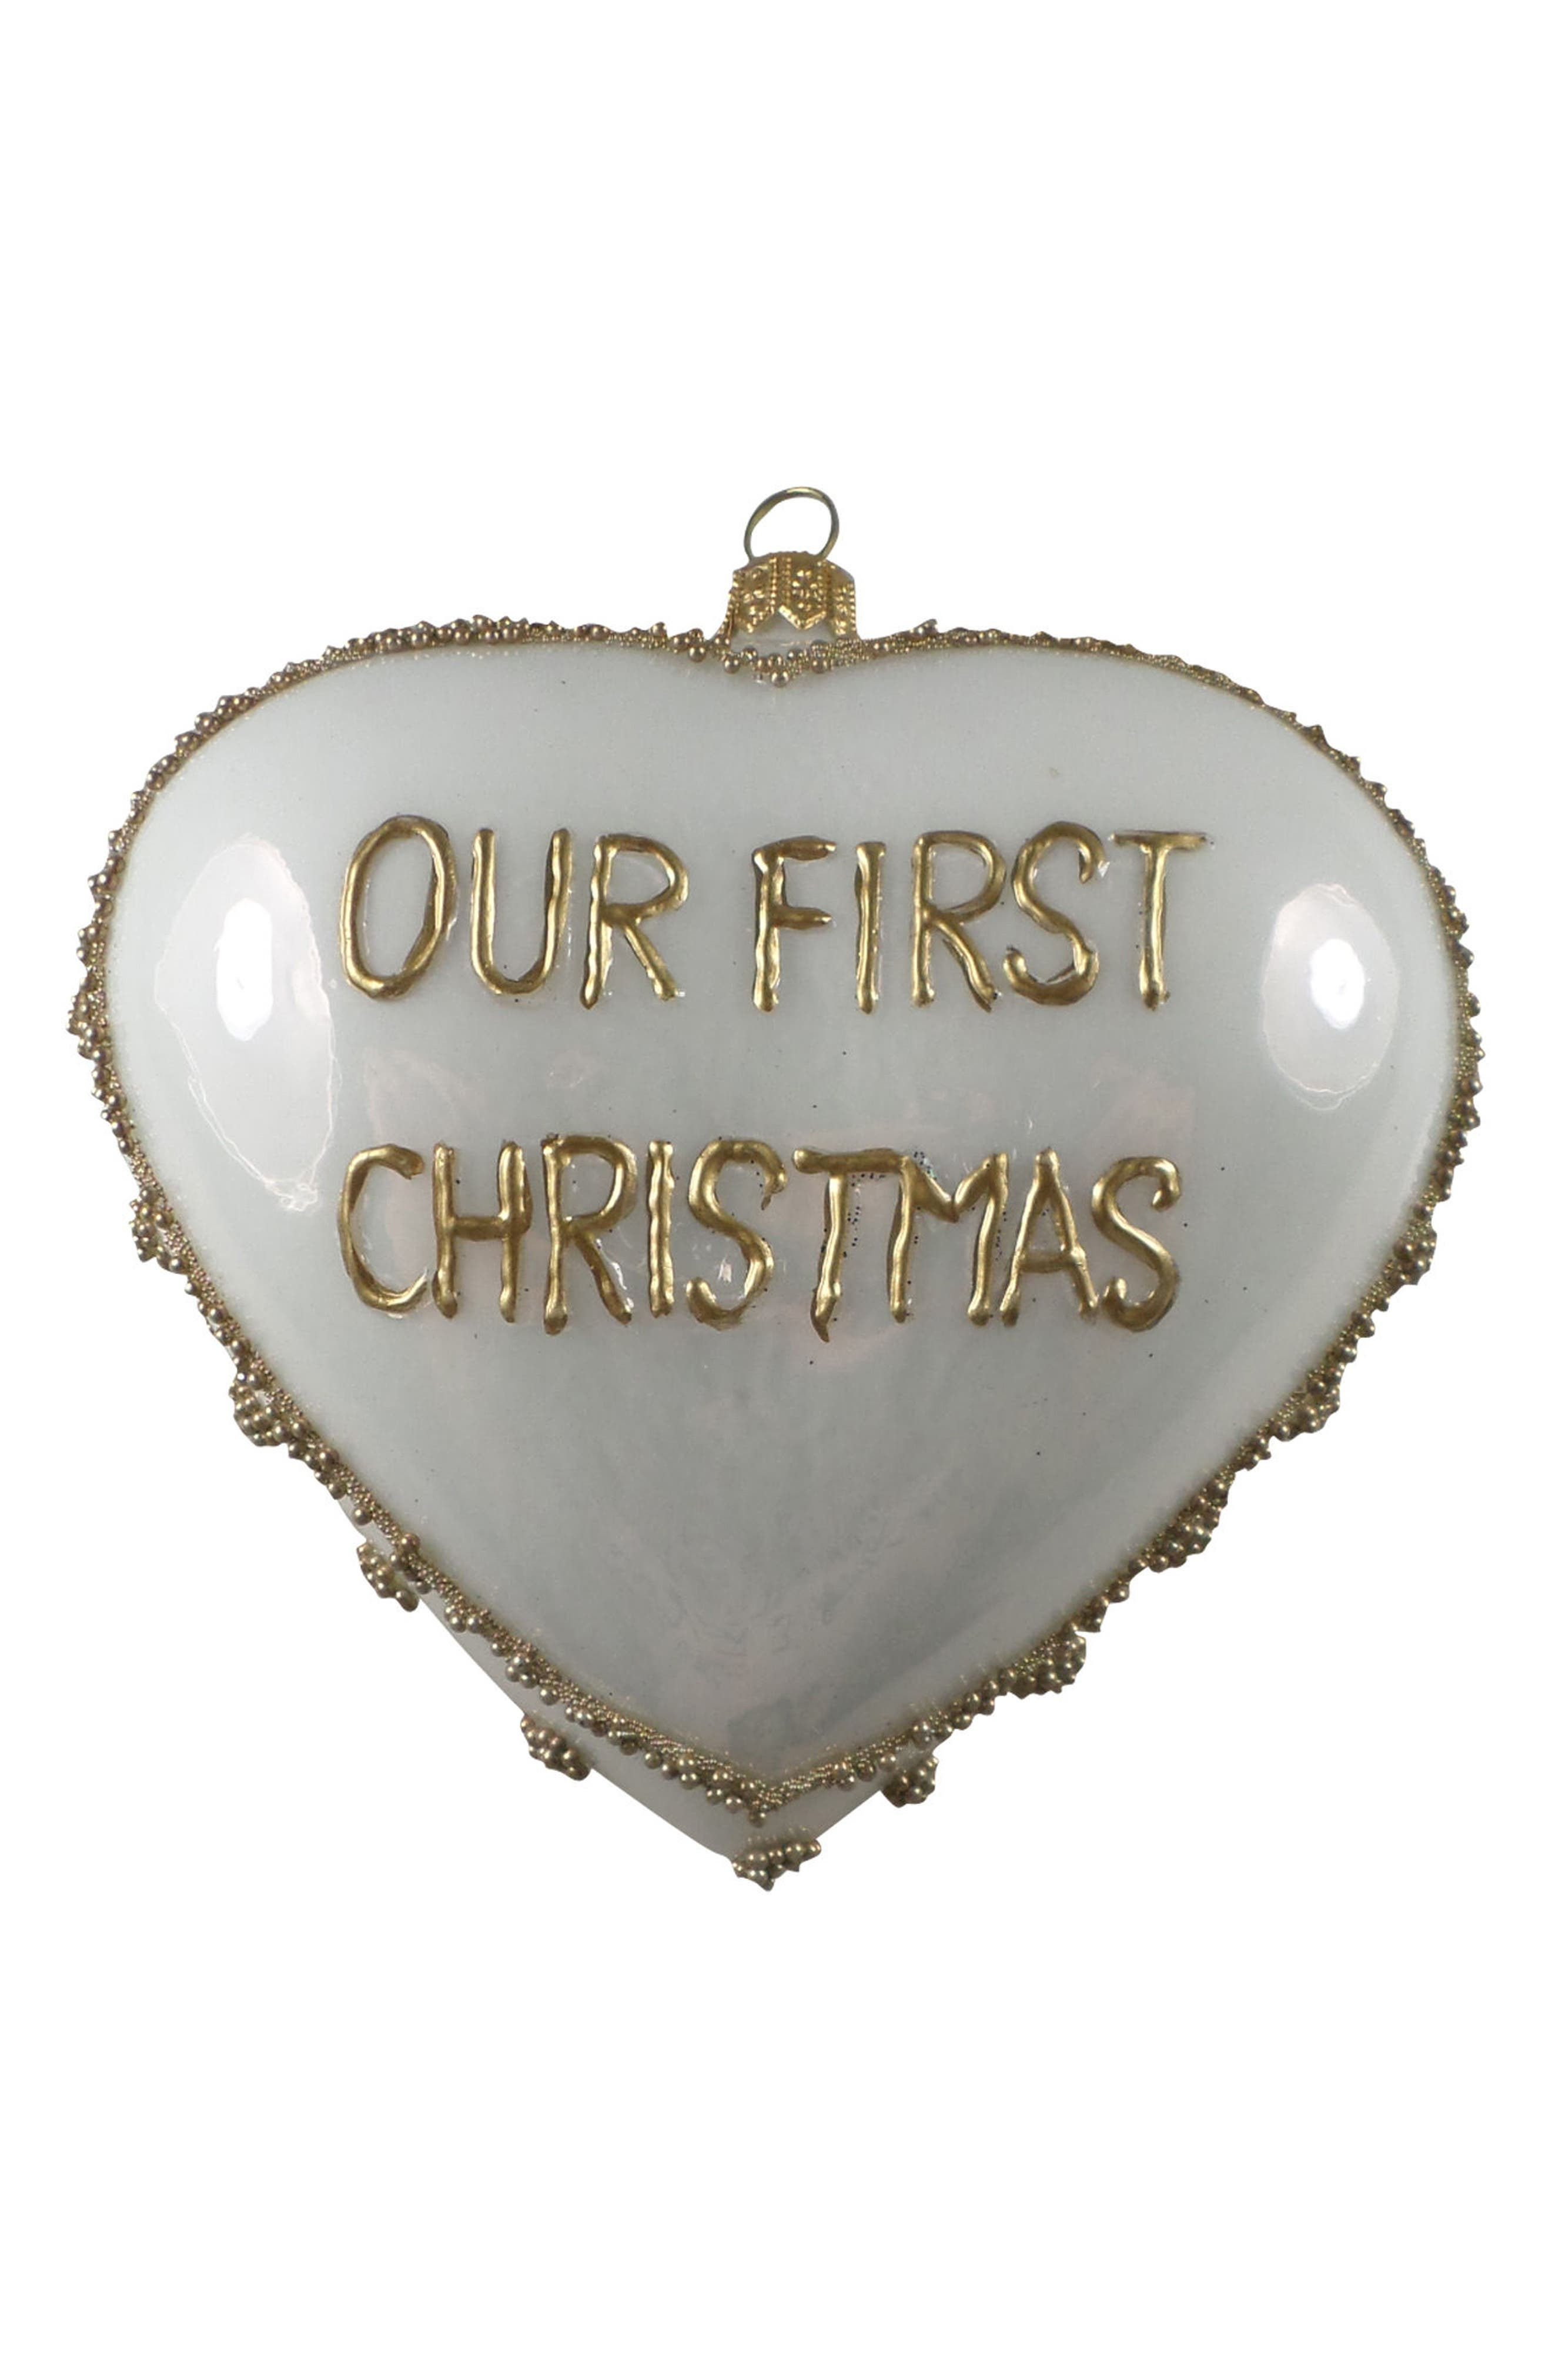 Our First Christmas Handblown Glass Heart Ornament,                         Main,                         color, White/ Gold